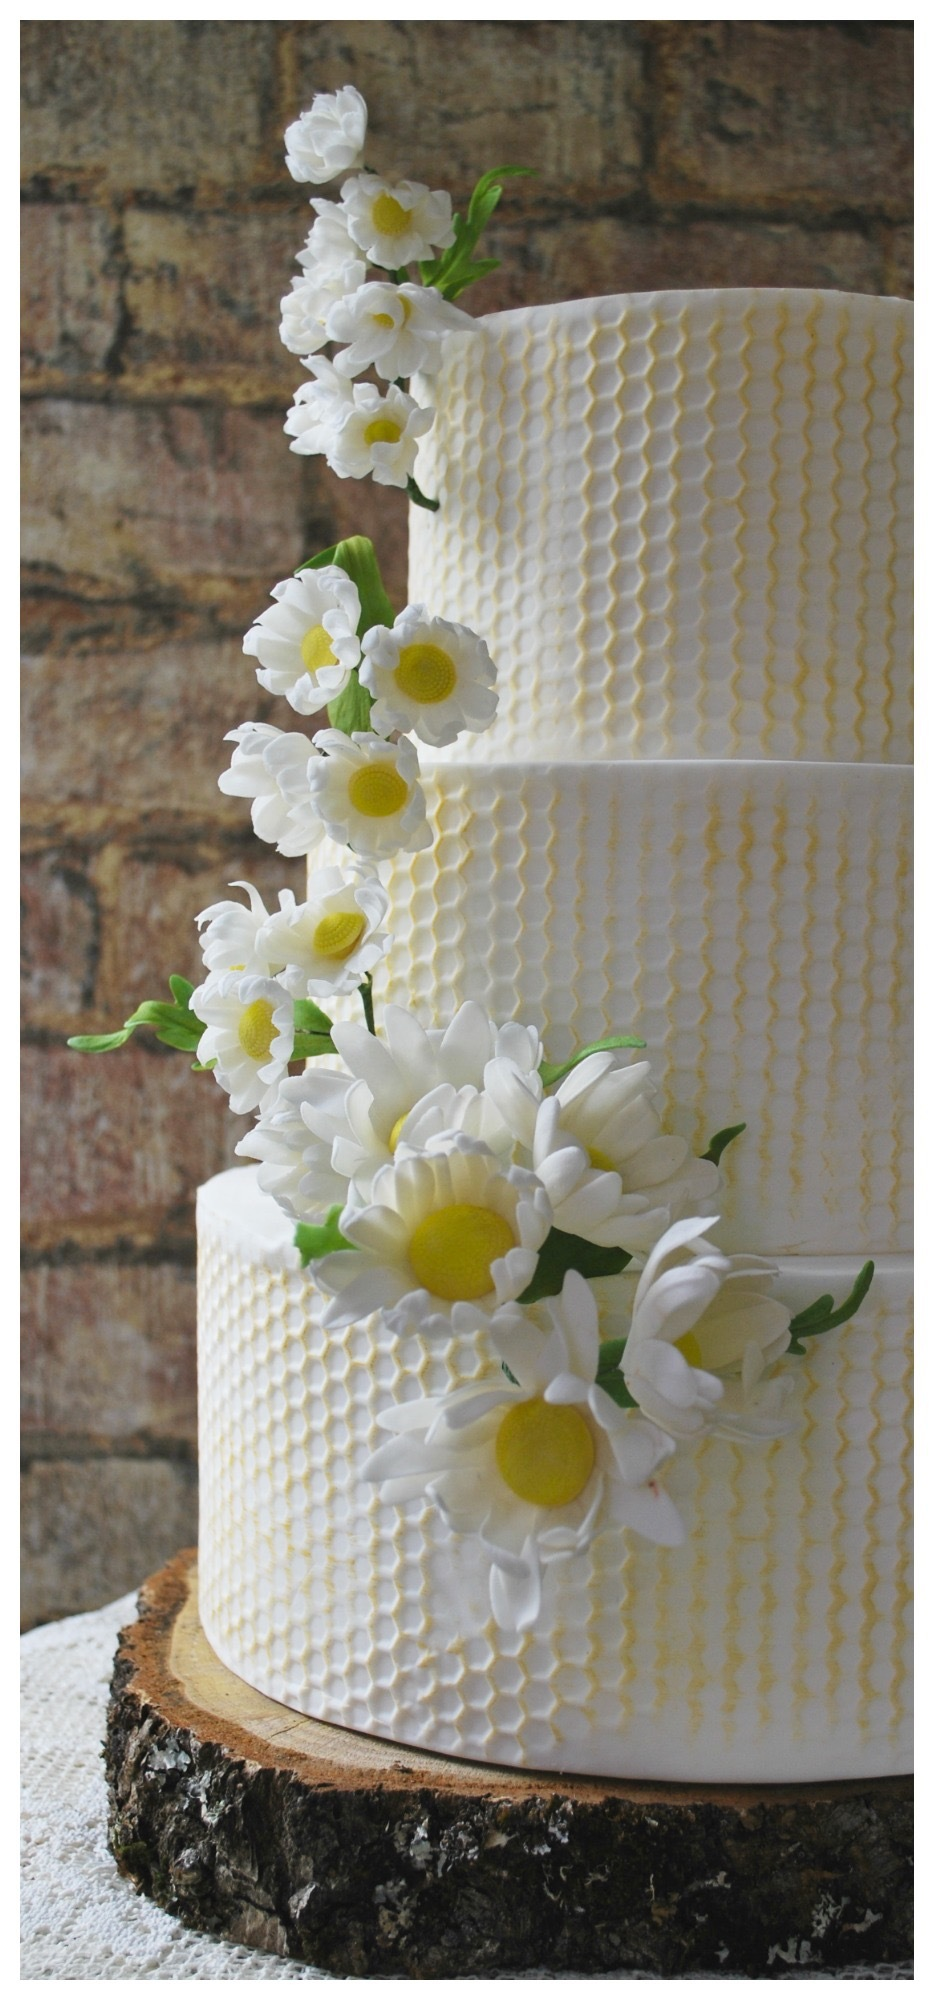 White textured wedding cake with yellow honeycomb patterned wedding